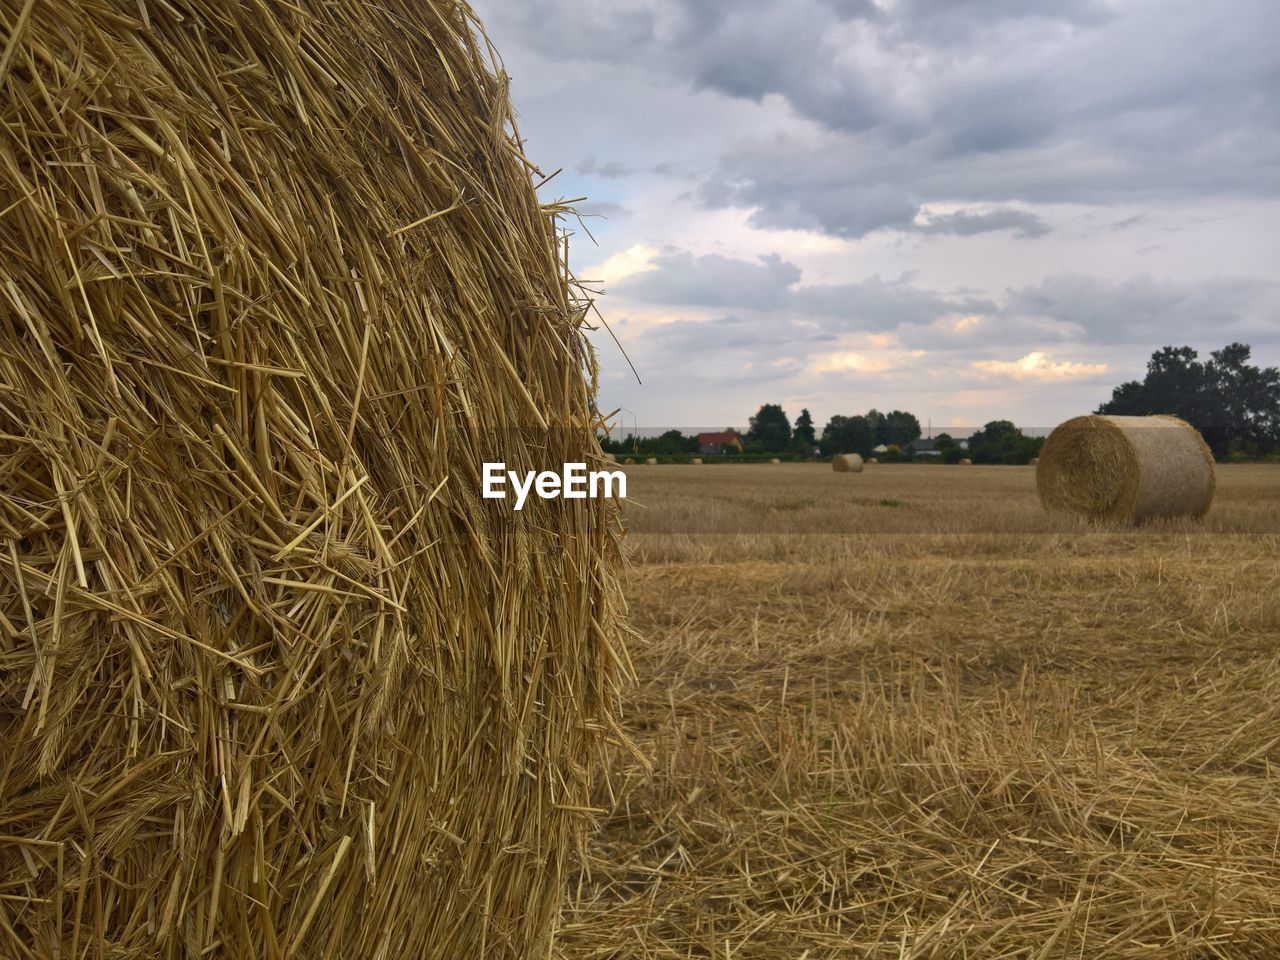 hay, bale, agriculture, farm, field, sky, plant, landscape, rural scene, land, cloud - sky, nature, rolled up, environment, tranquility, harvesting, beauty in nature, tranquil scene, crop, no people